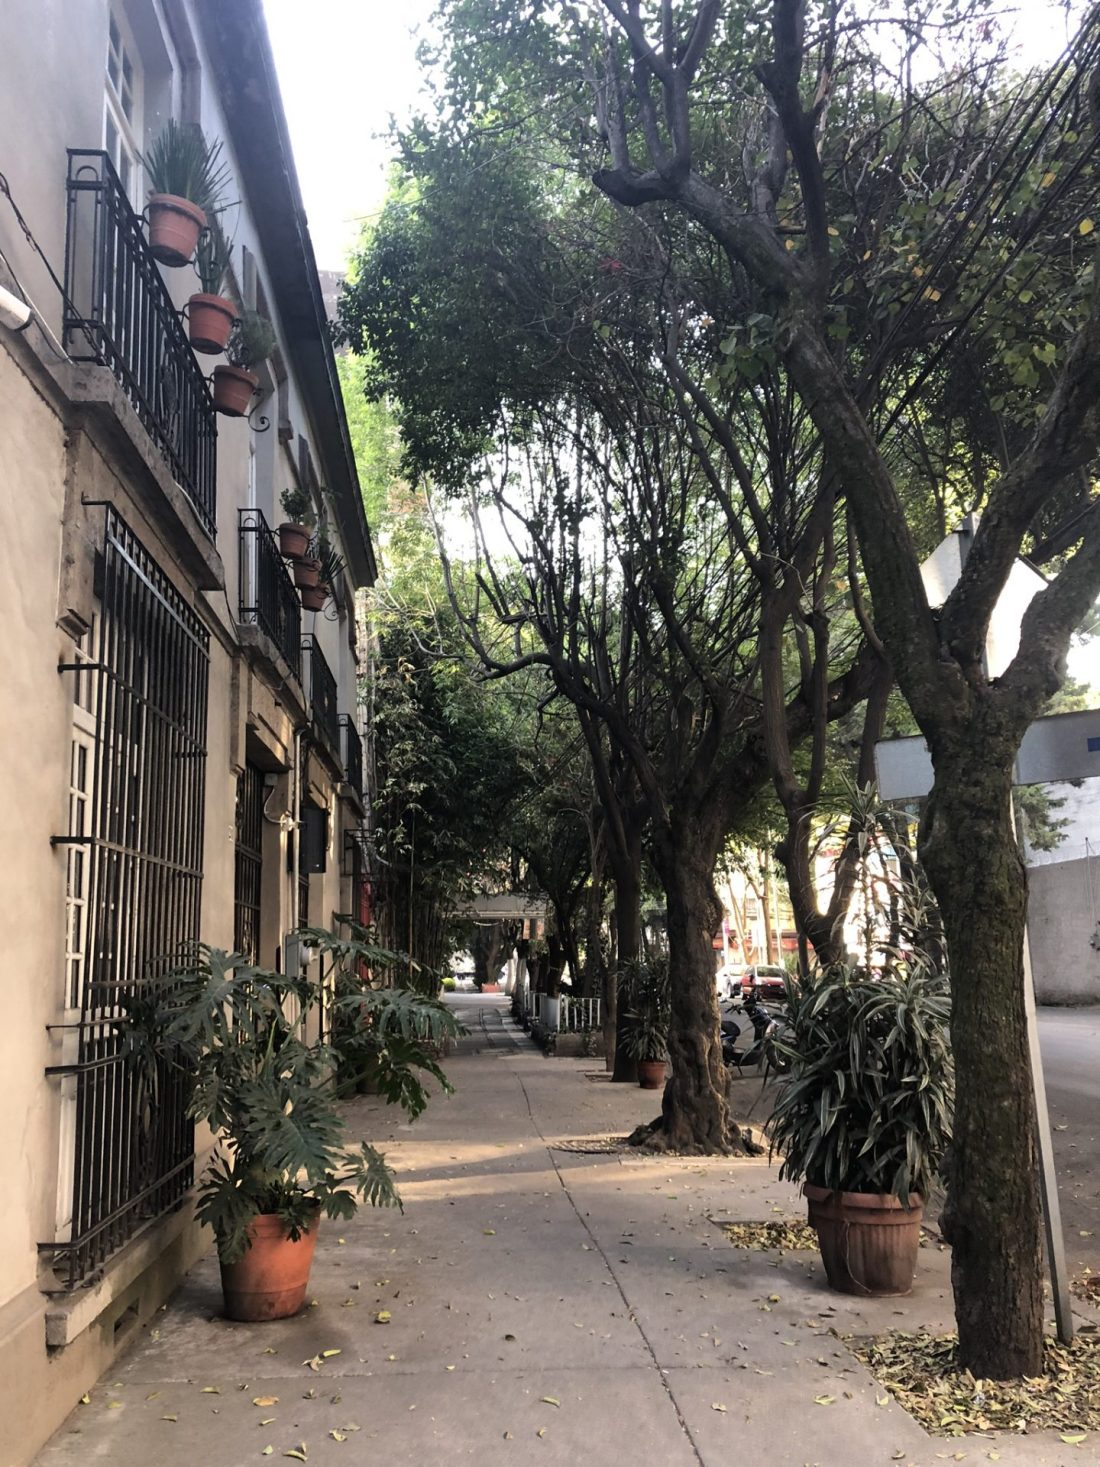 Streets of Condesa, Mexico City